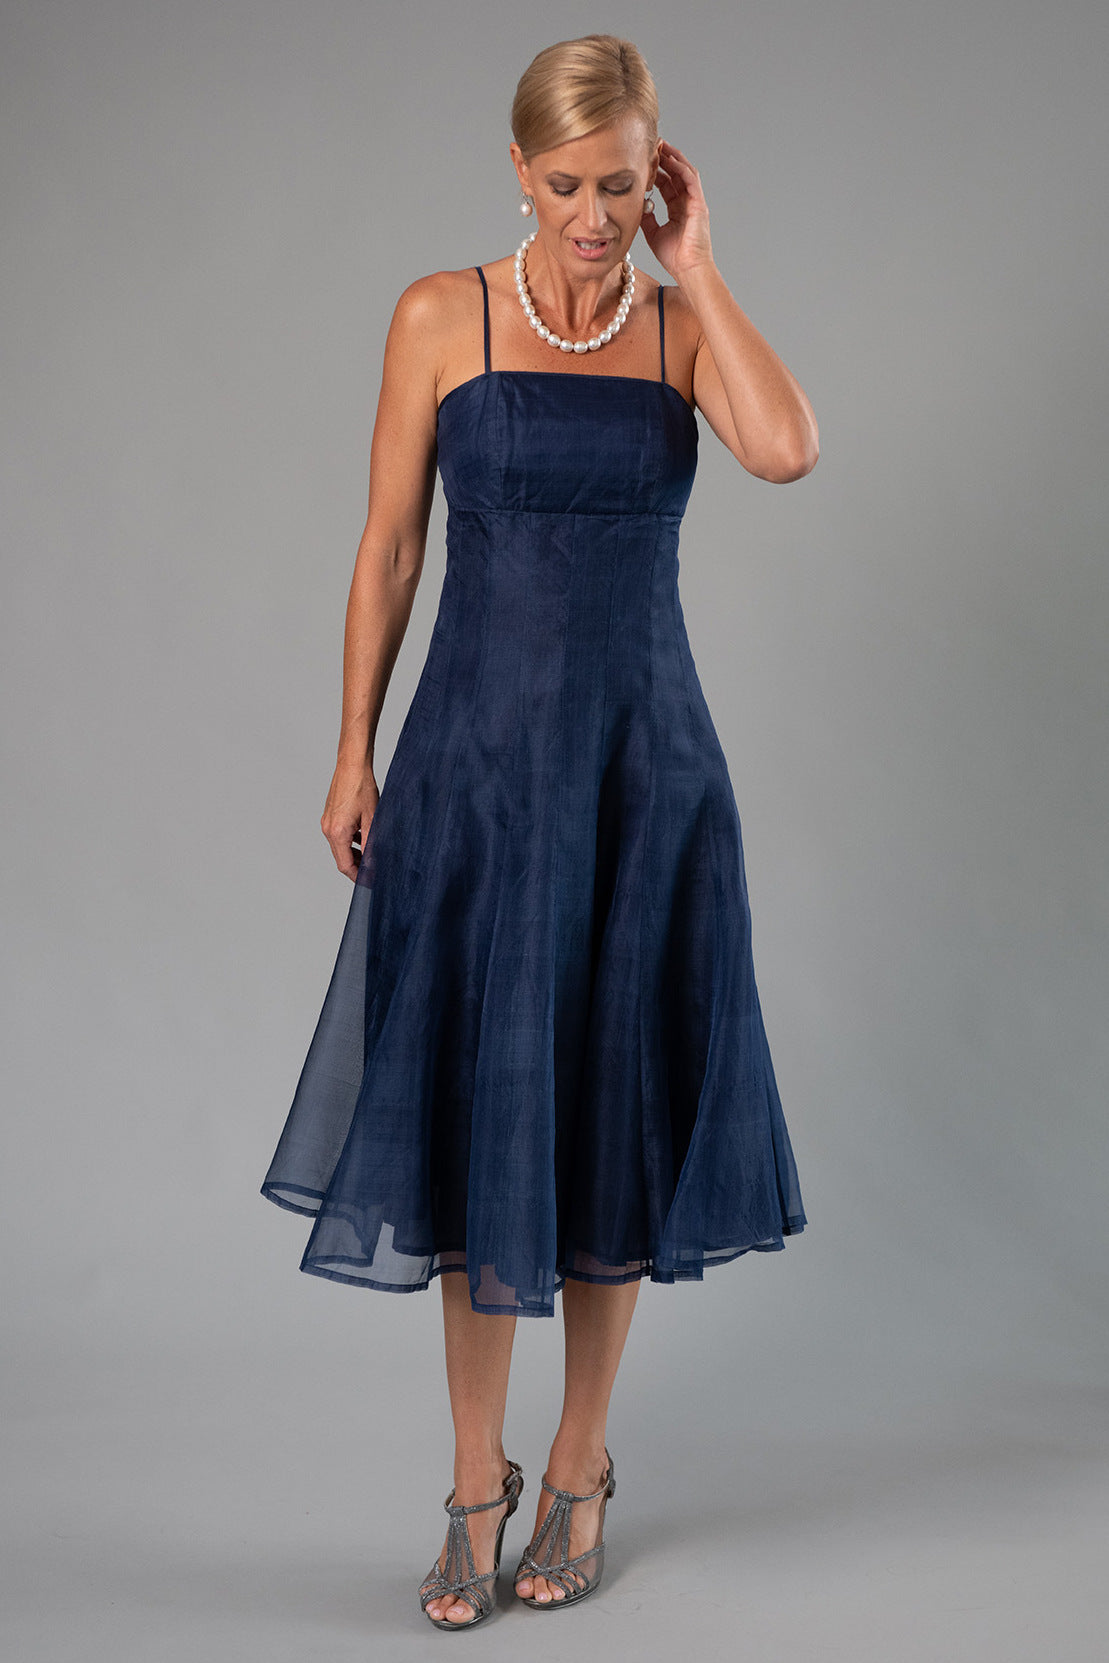 Tea Length Dress - Midnight Blue